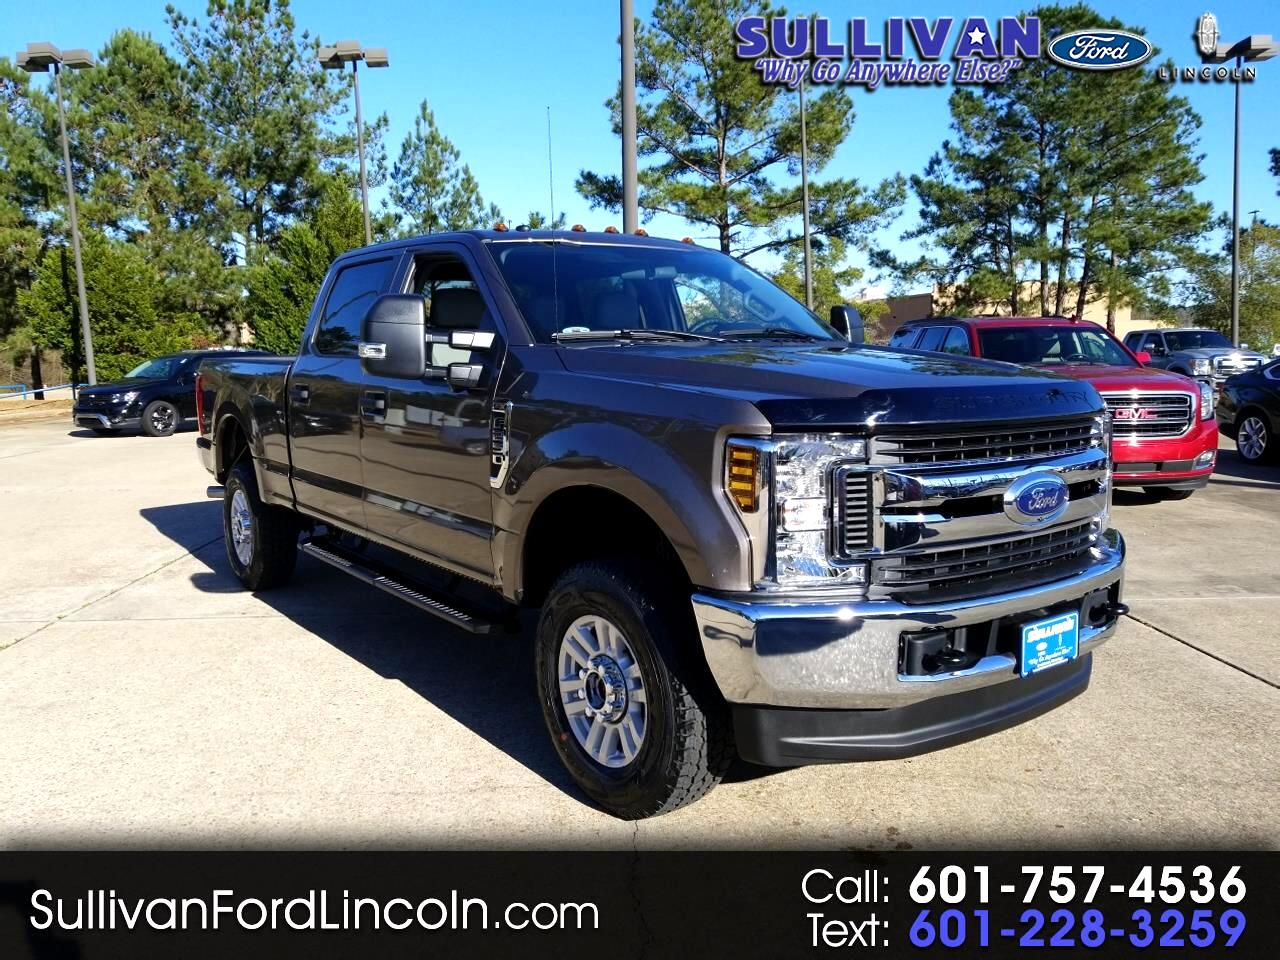 2019 Ford Super Duty F-250 SRW 4WD Crew Cab 156